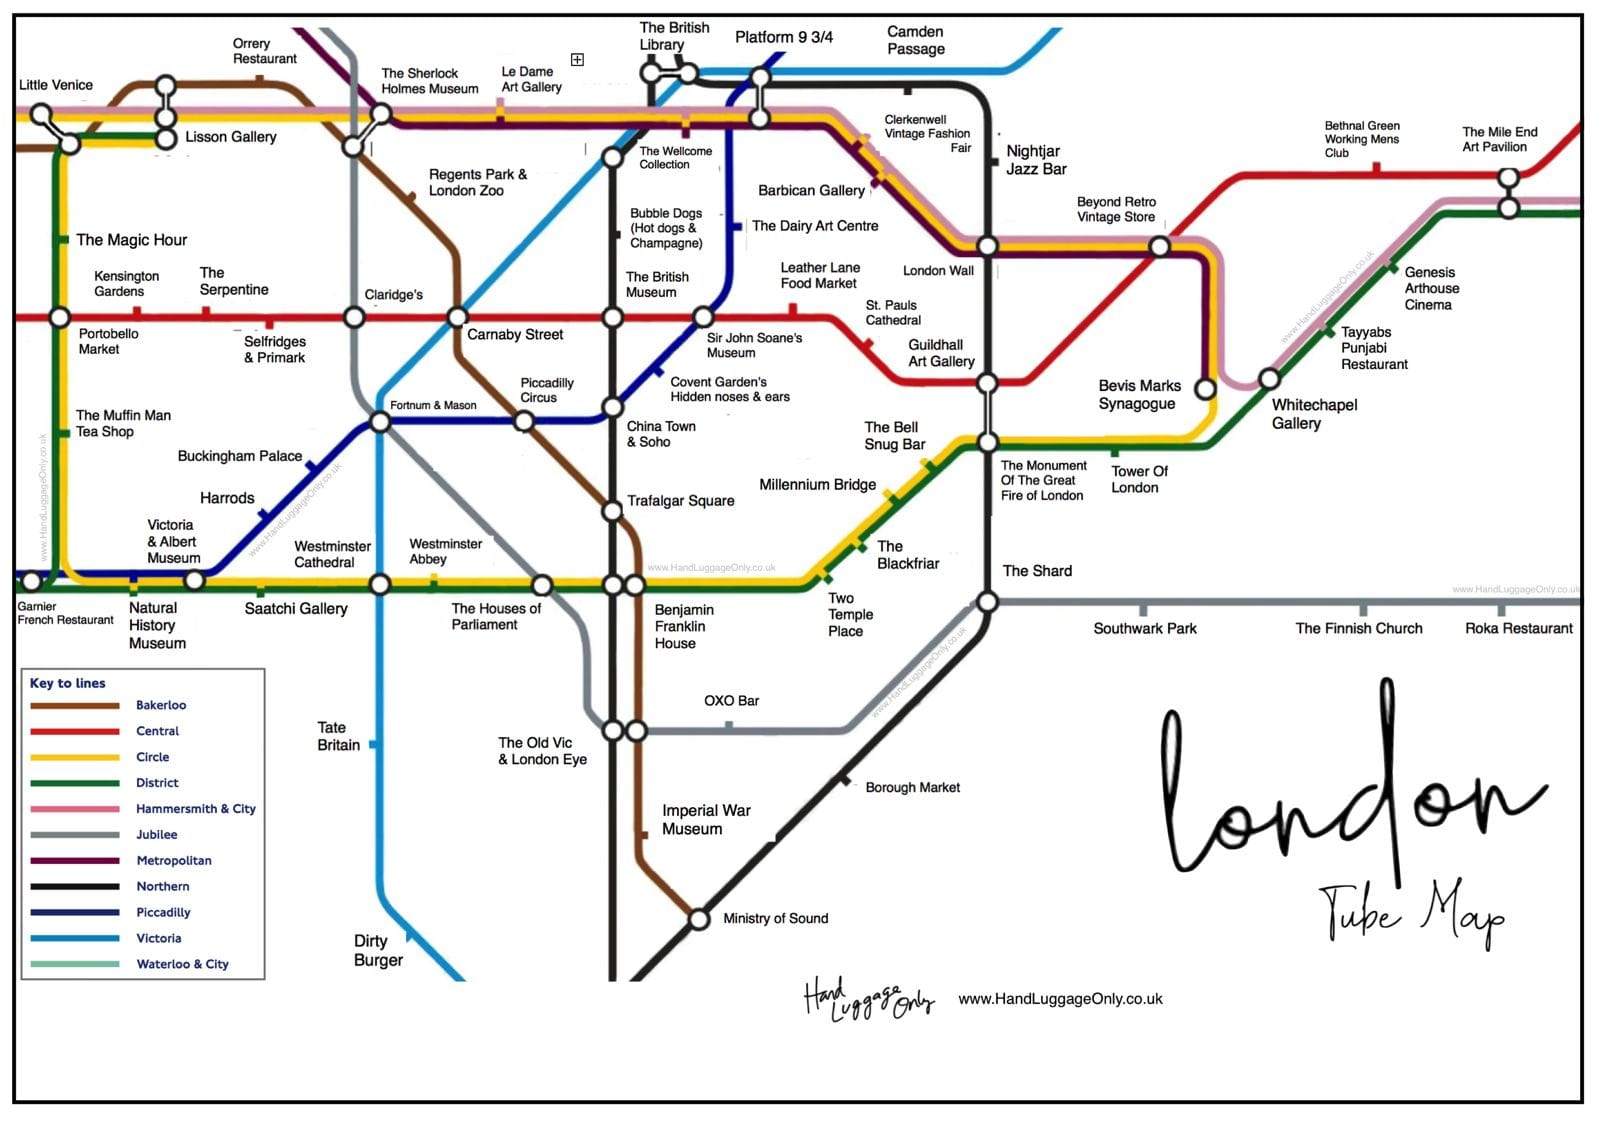 Lindon Tube Map London Underground Map: What To See At Each Stop   Hand Luggage